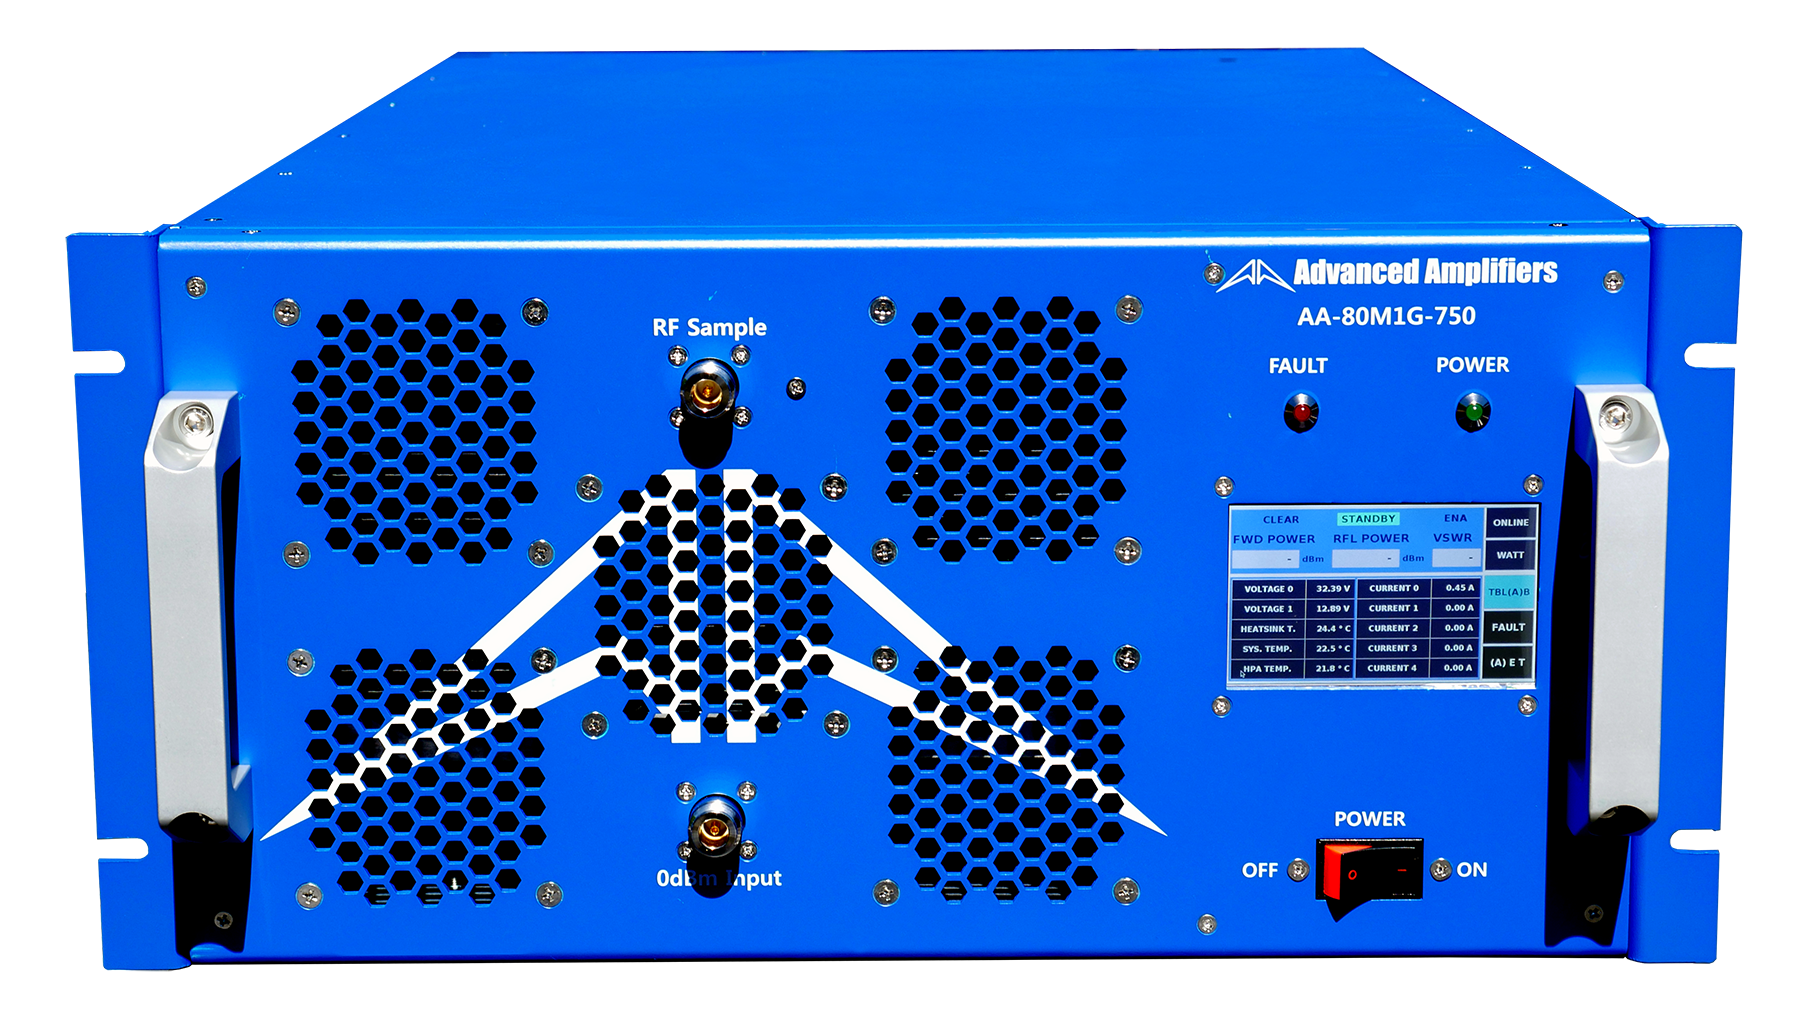 Advanced Amplifiers AA-80M1G-750